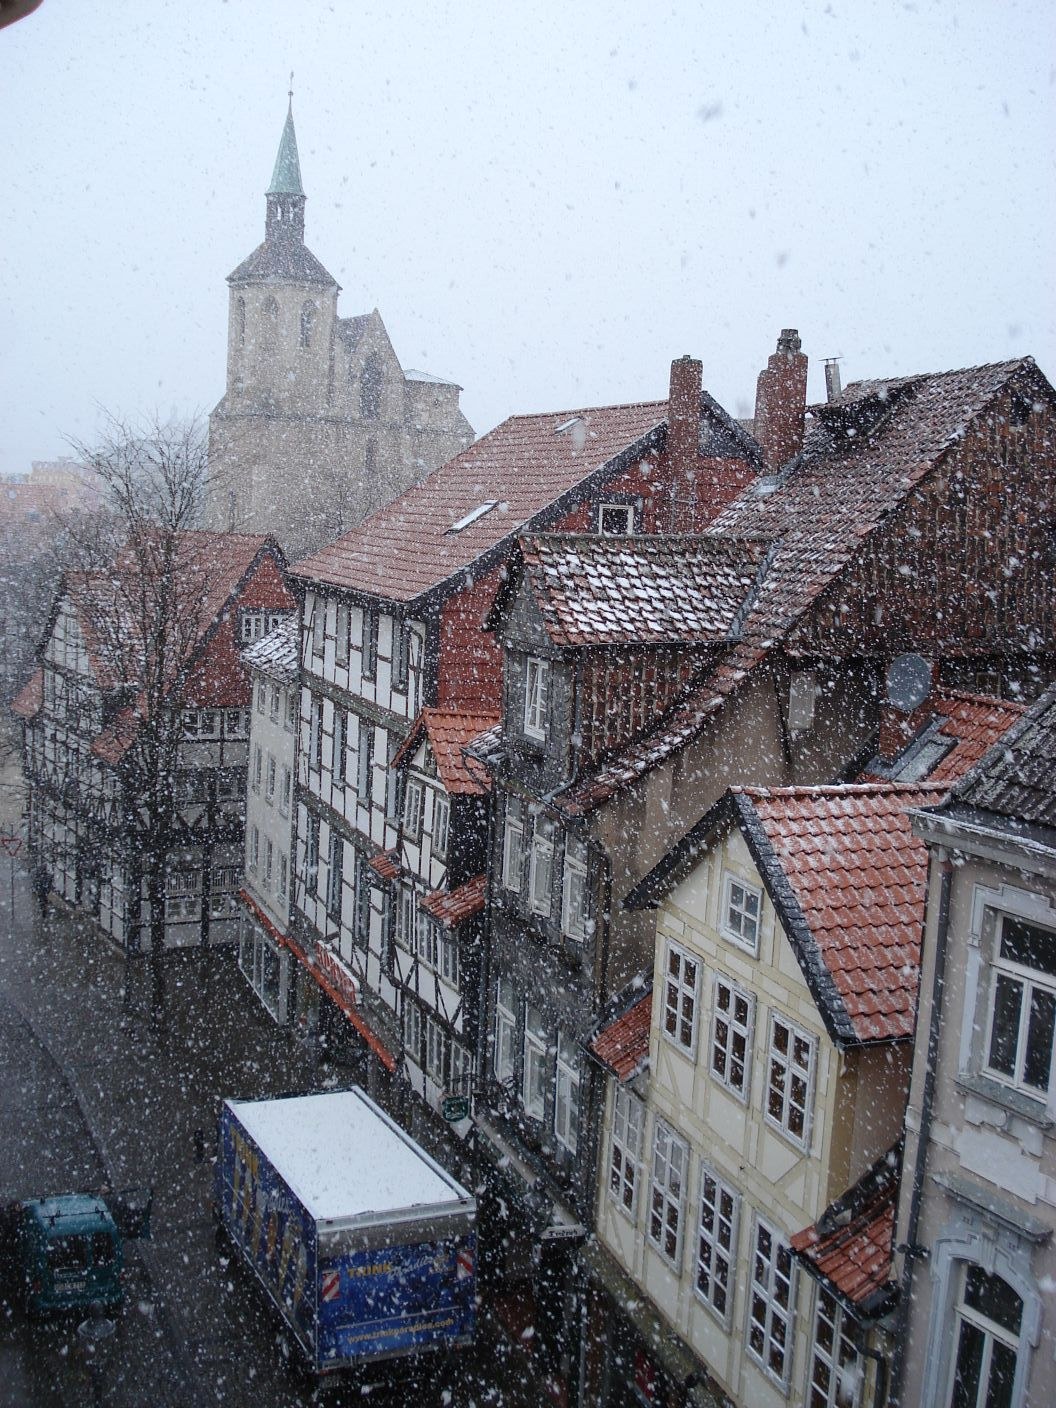 Braunschweig Germany, uncredited